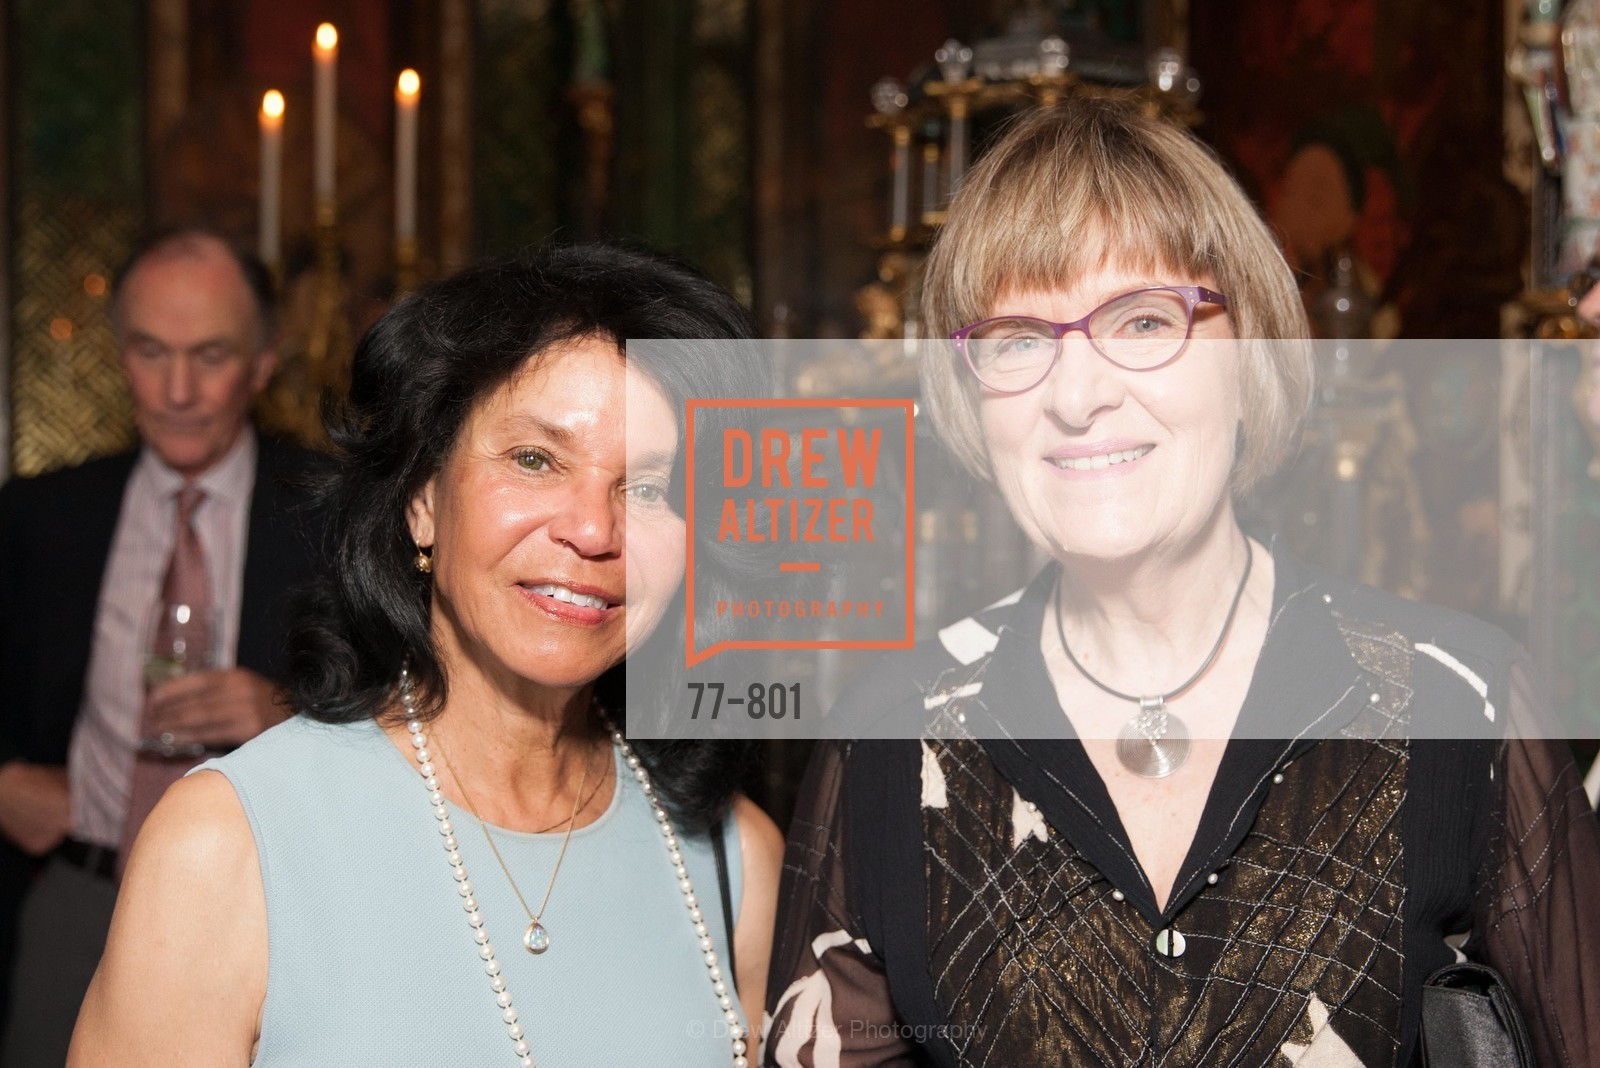 Janice Bell Kaye, GETTY Hosts Leakey Foundation Dinner, US, April 24th, 2015,Drew Altizer, Drew Altizer Photography, full-service agency, private events, San Francisco photographer, photographer california